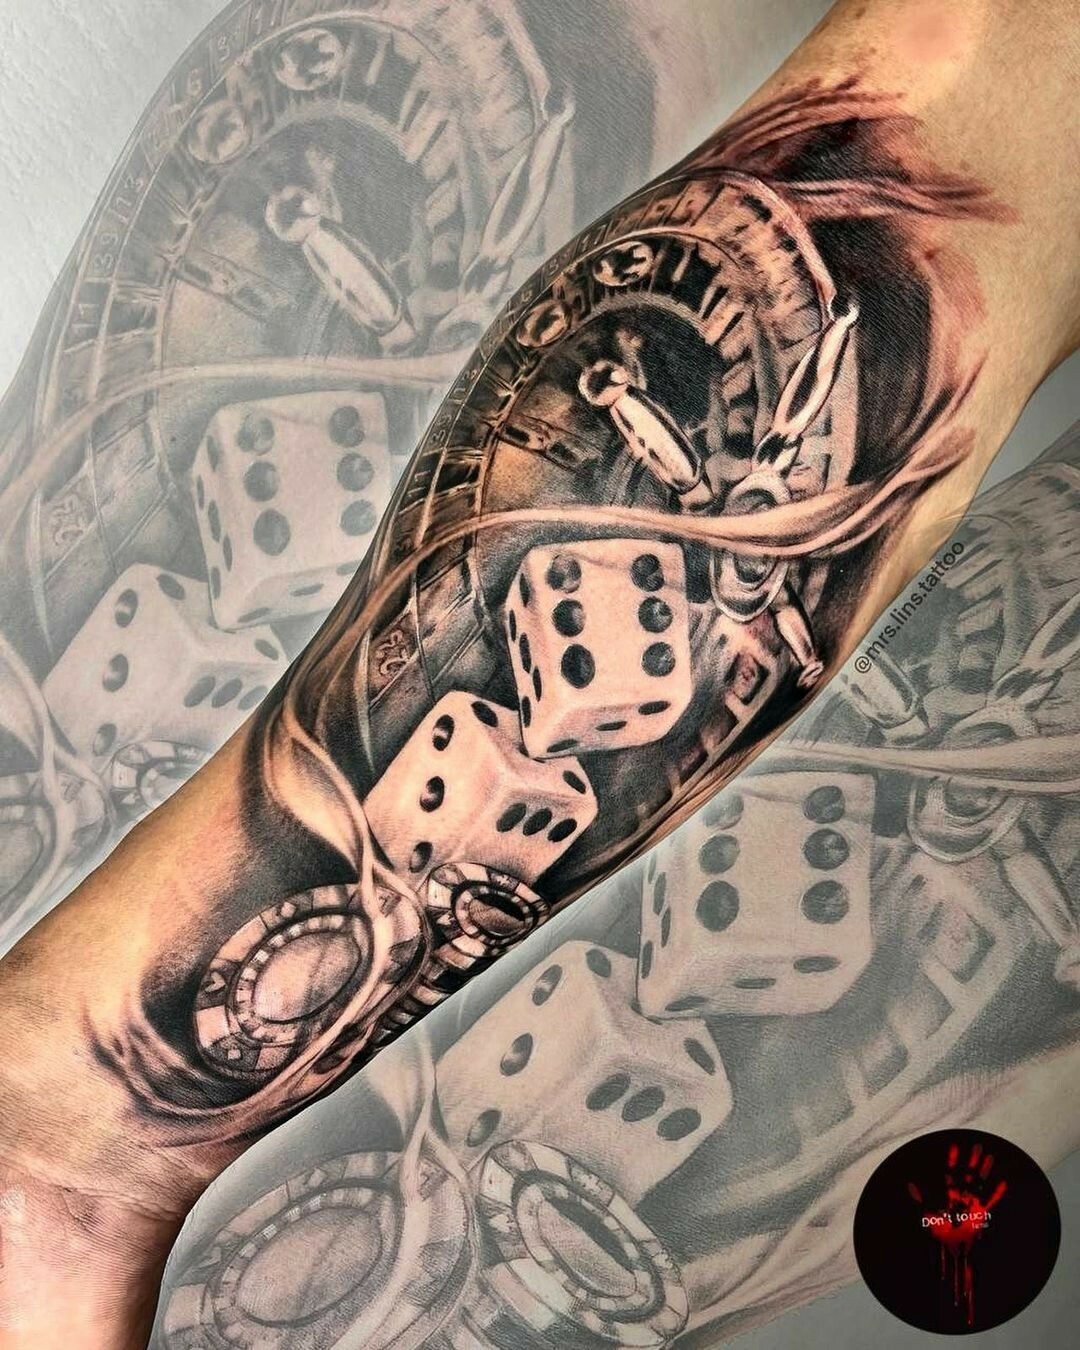 Inksearch tattoo donttouchtattoo